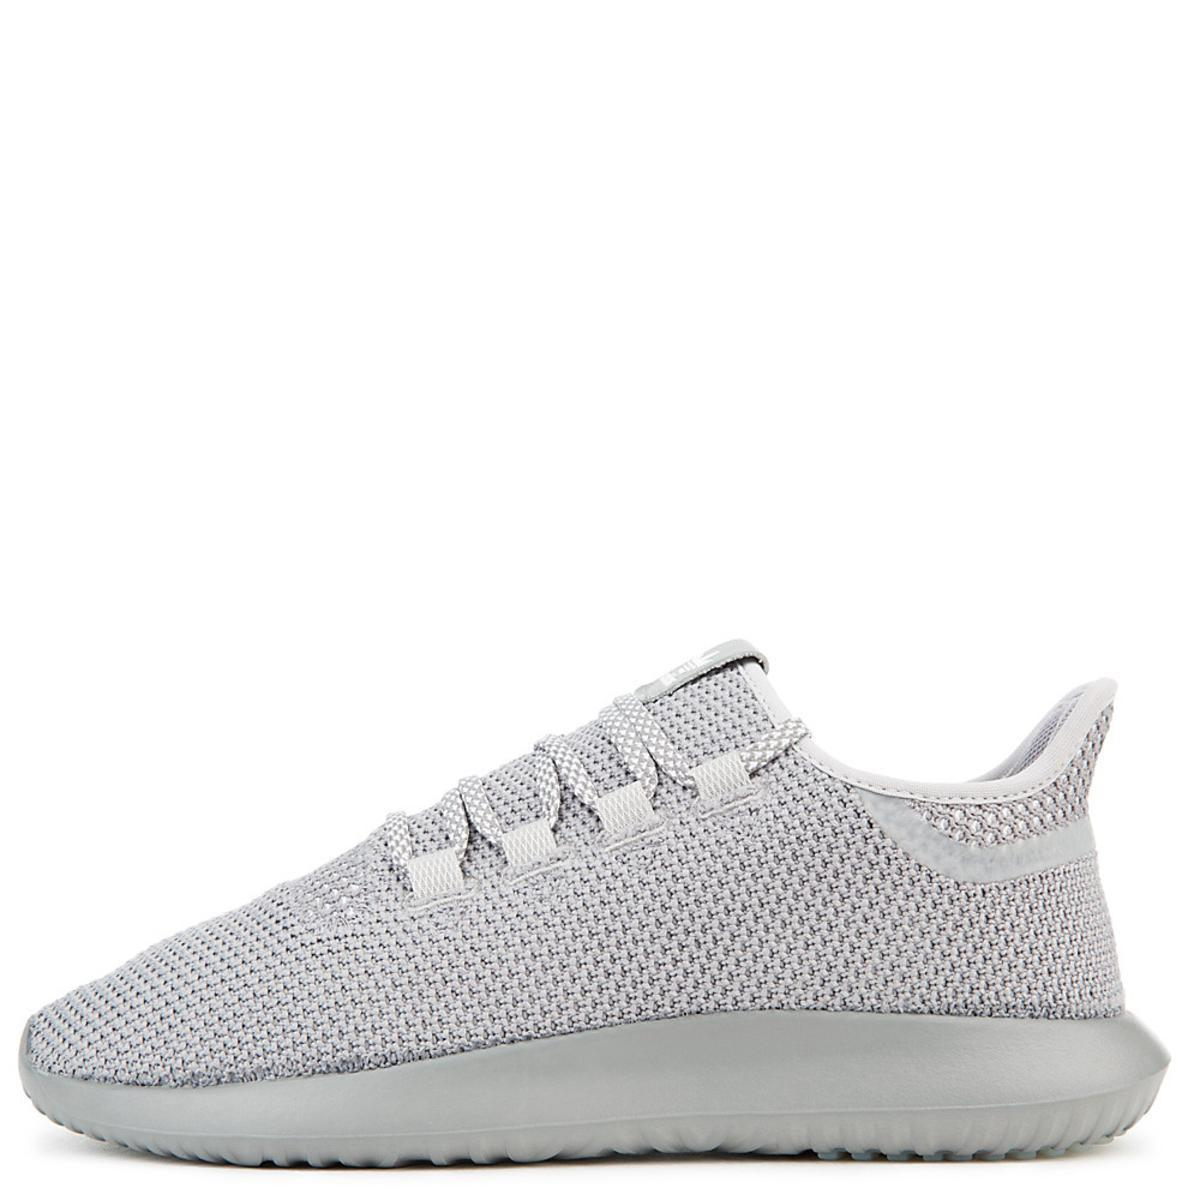 Men's Tubular Shadow CK Sneakers